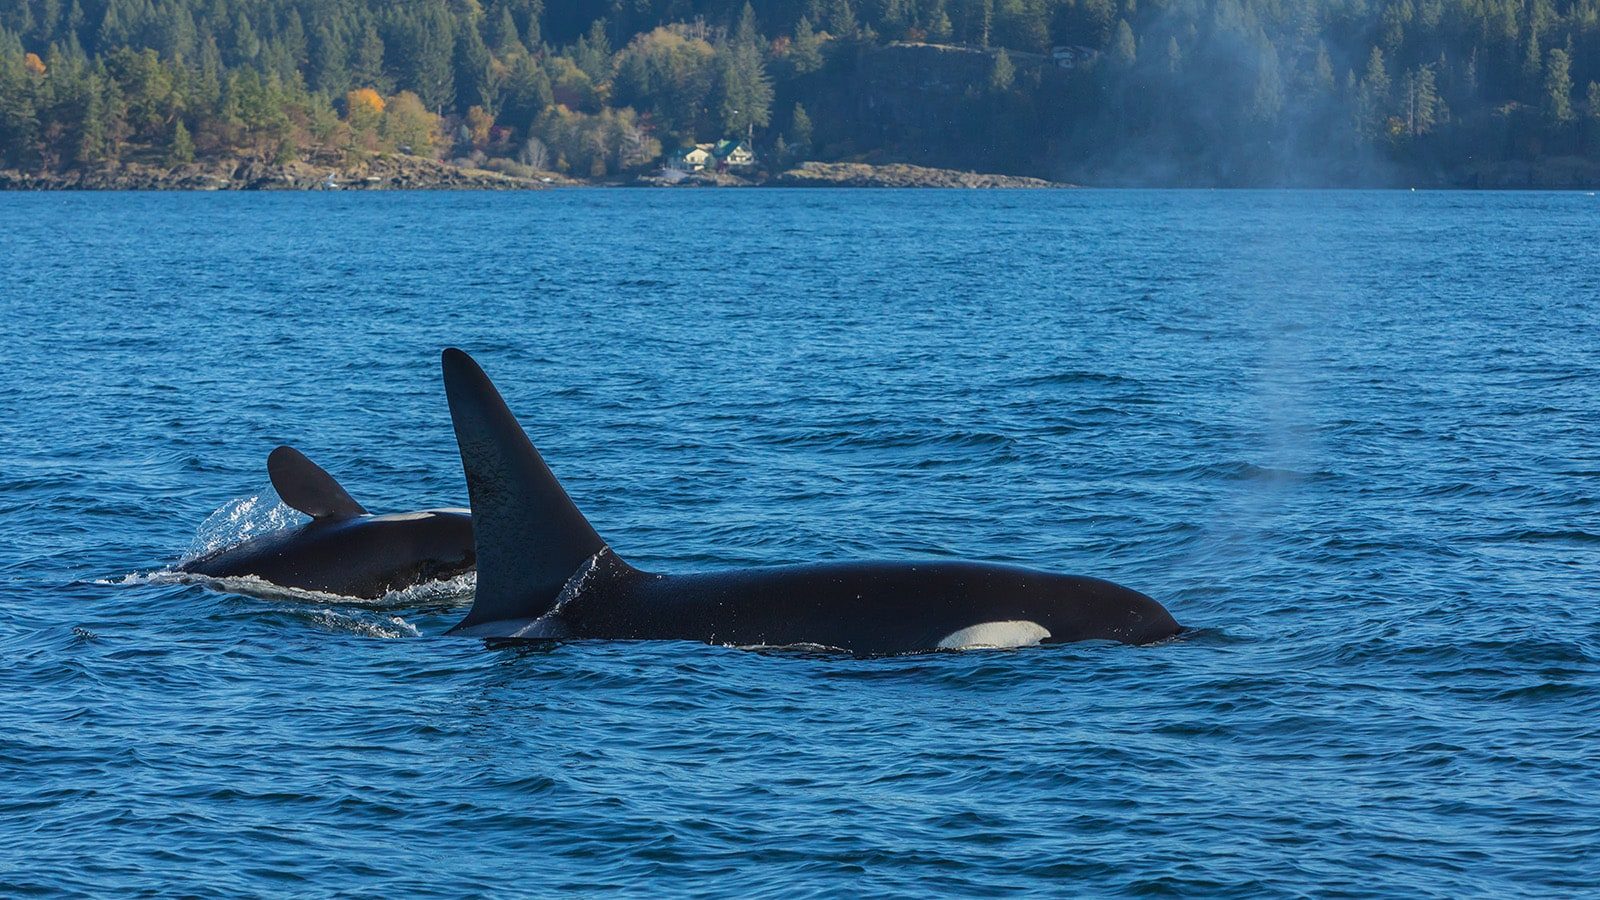 Two killer whales at the surface of the water